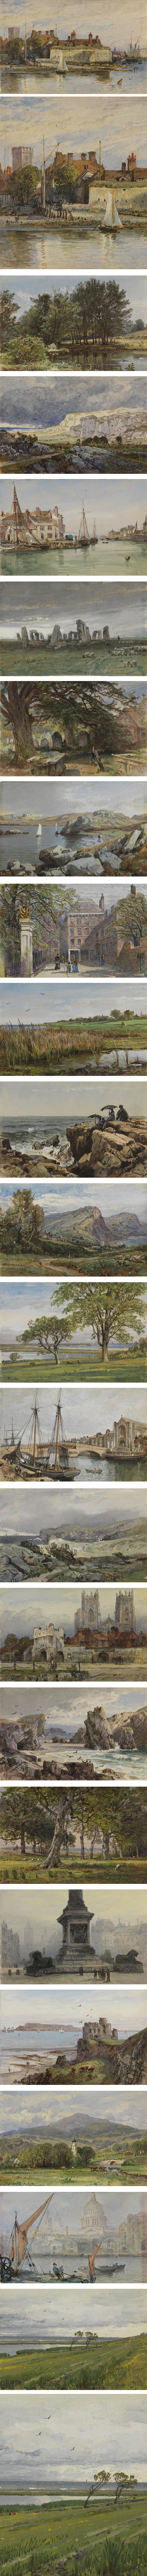 A Mine of Beauty: William Trost Richards small watercolors at PAFA